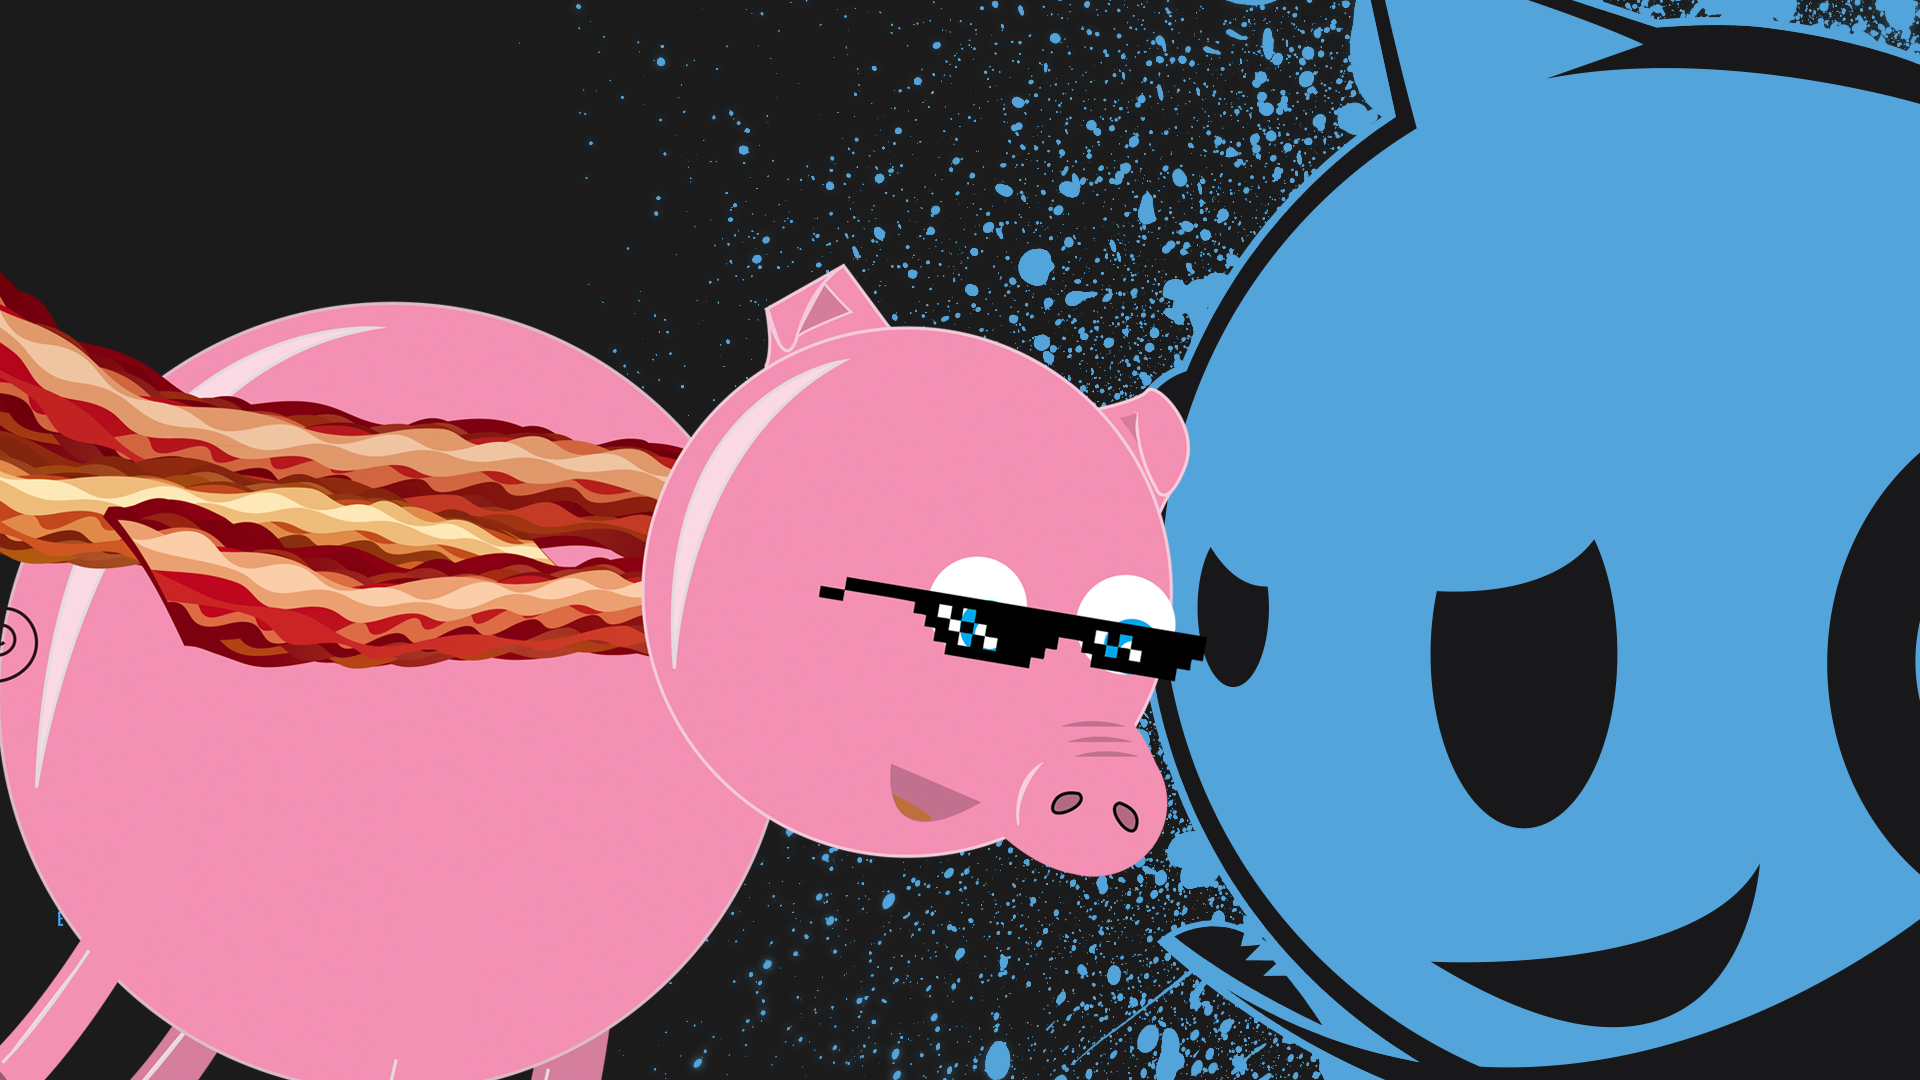 BaconCape Teams Up With Large Gaming Organisation Animate